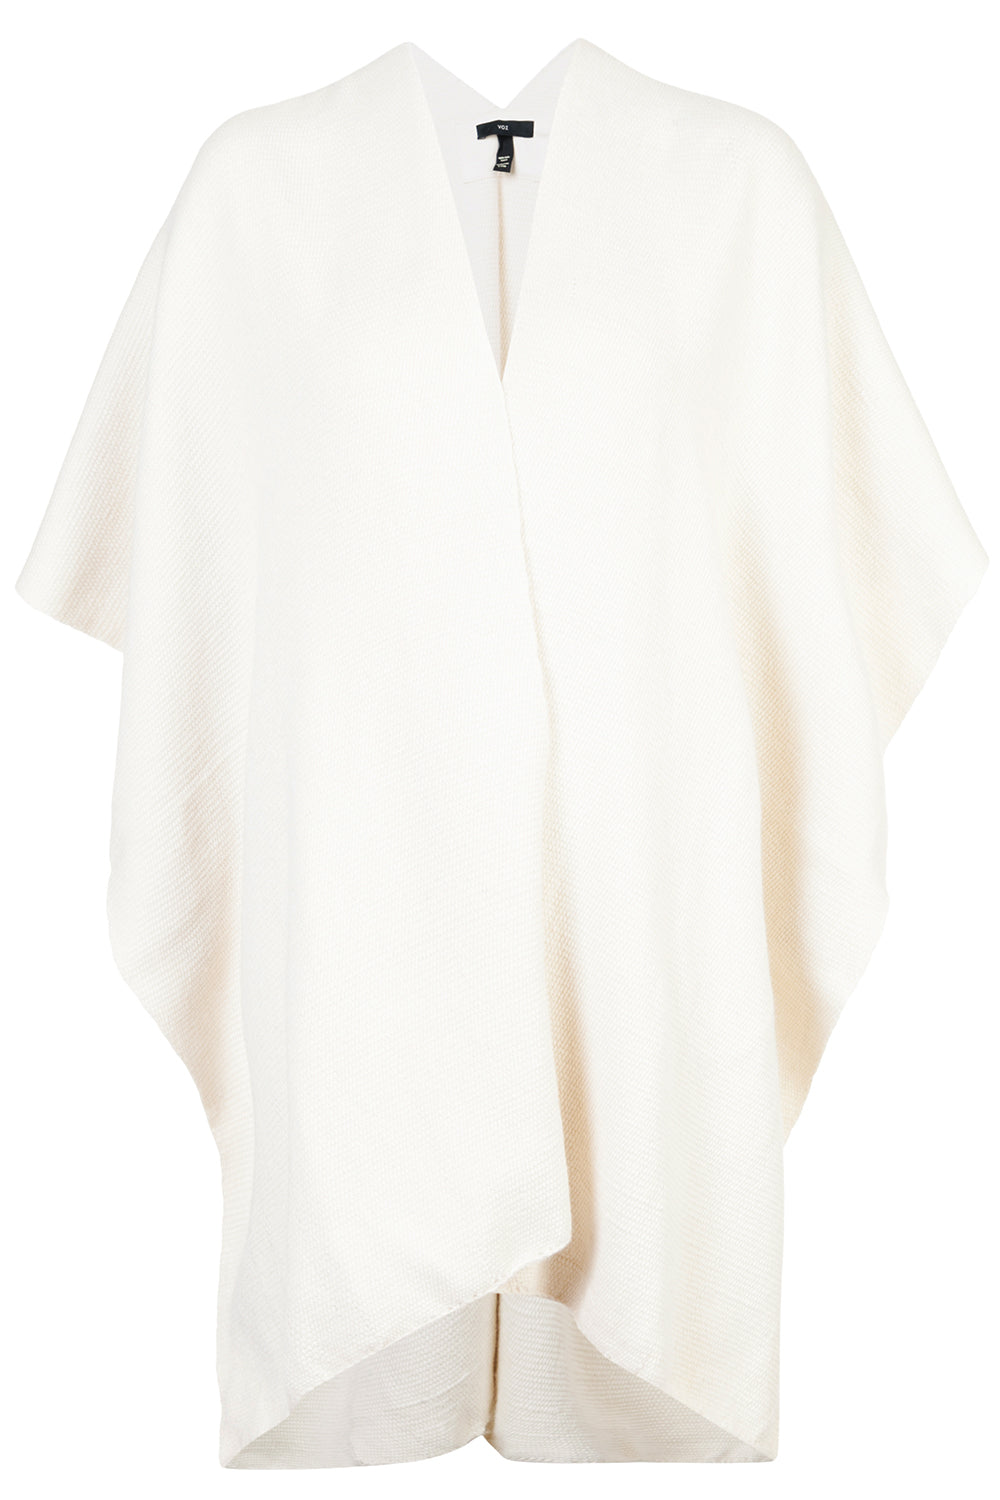 Cotton Short Duster in Ivory